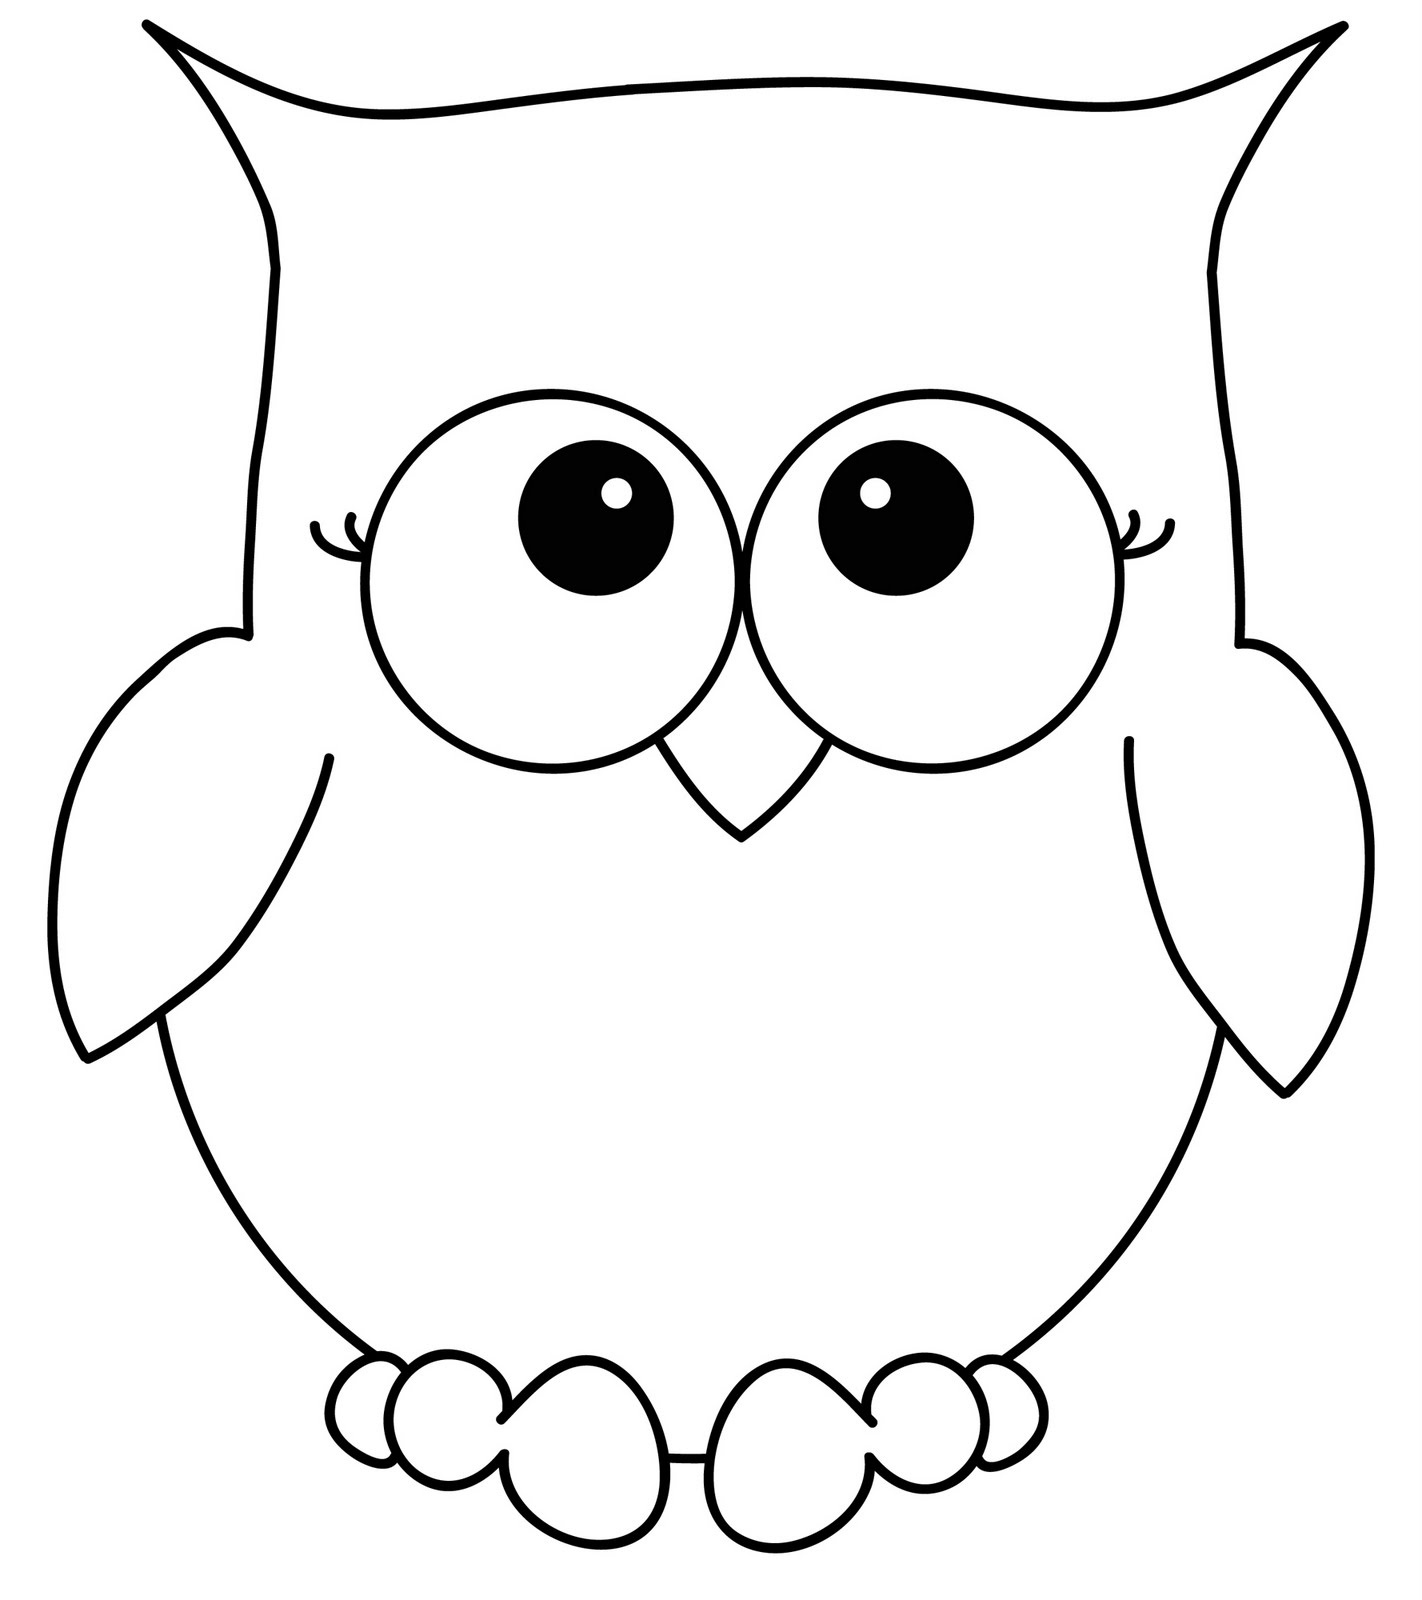 8 Best Images of Black And White Owl Printables - Owl ...